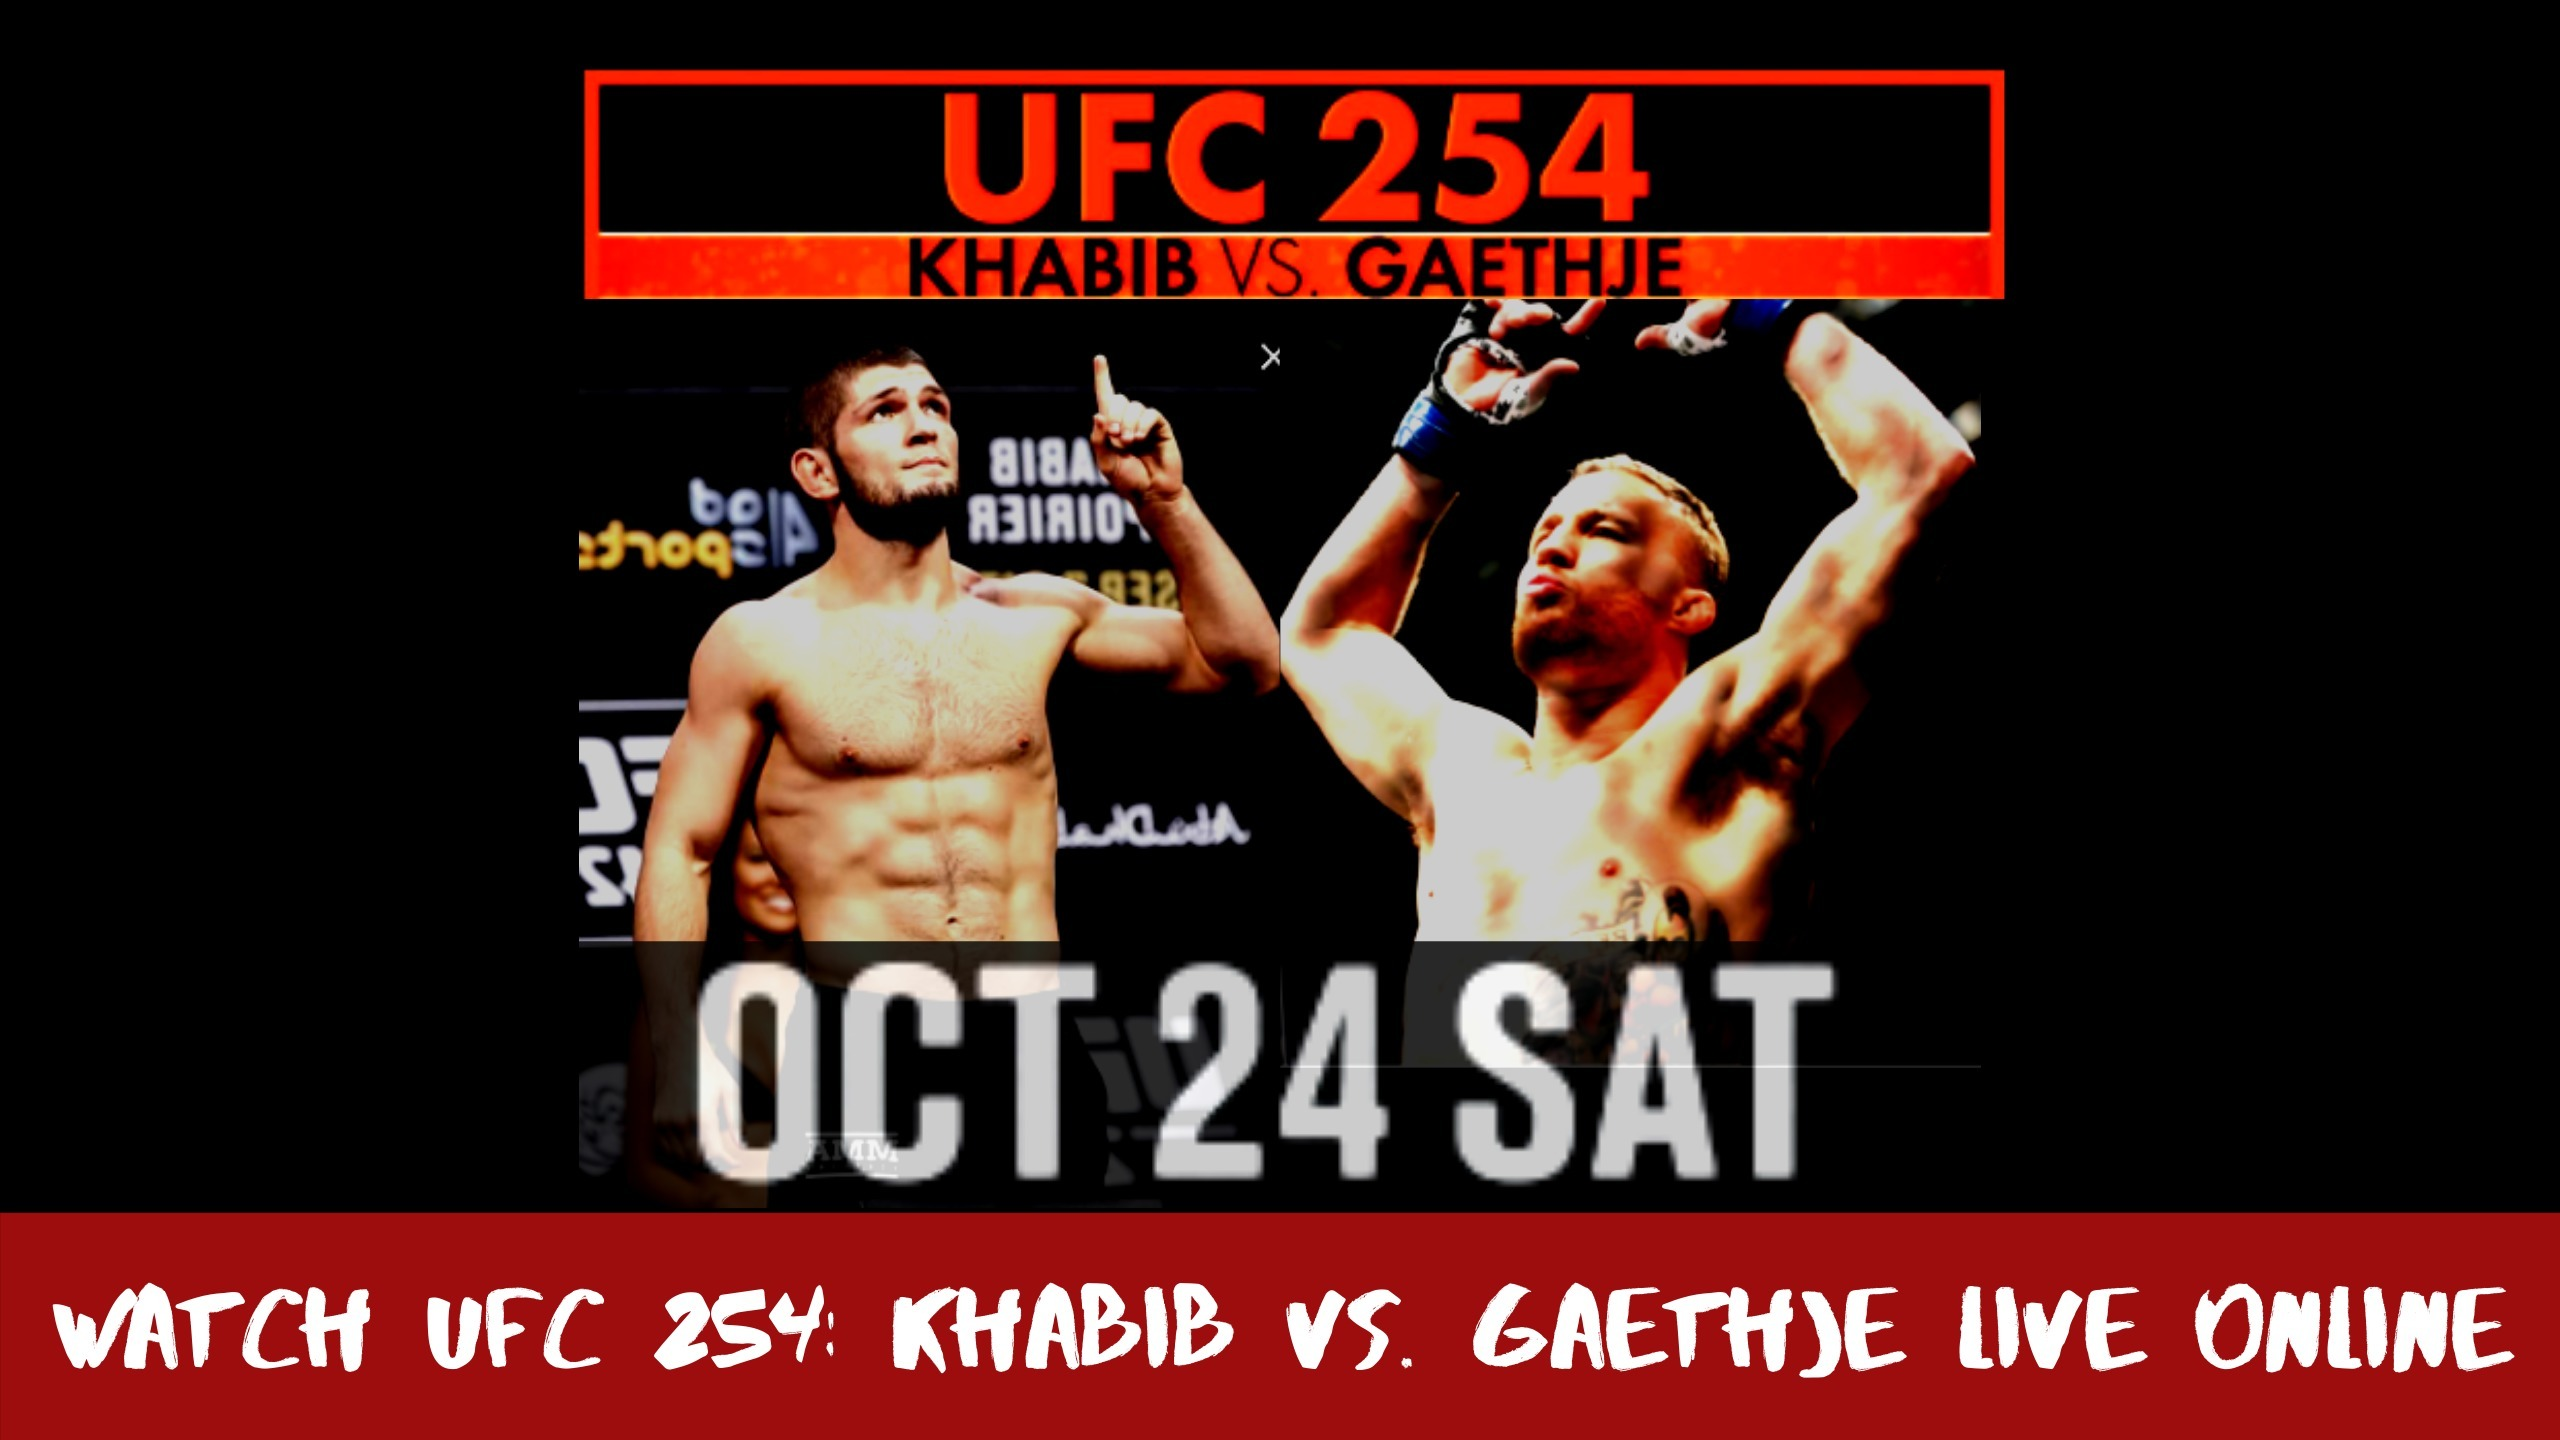 UFC 254 Live Stream Free (@ufc254livestreamfree) Cover Image